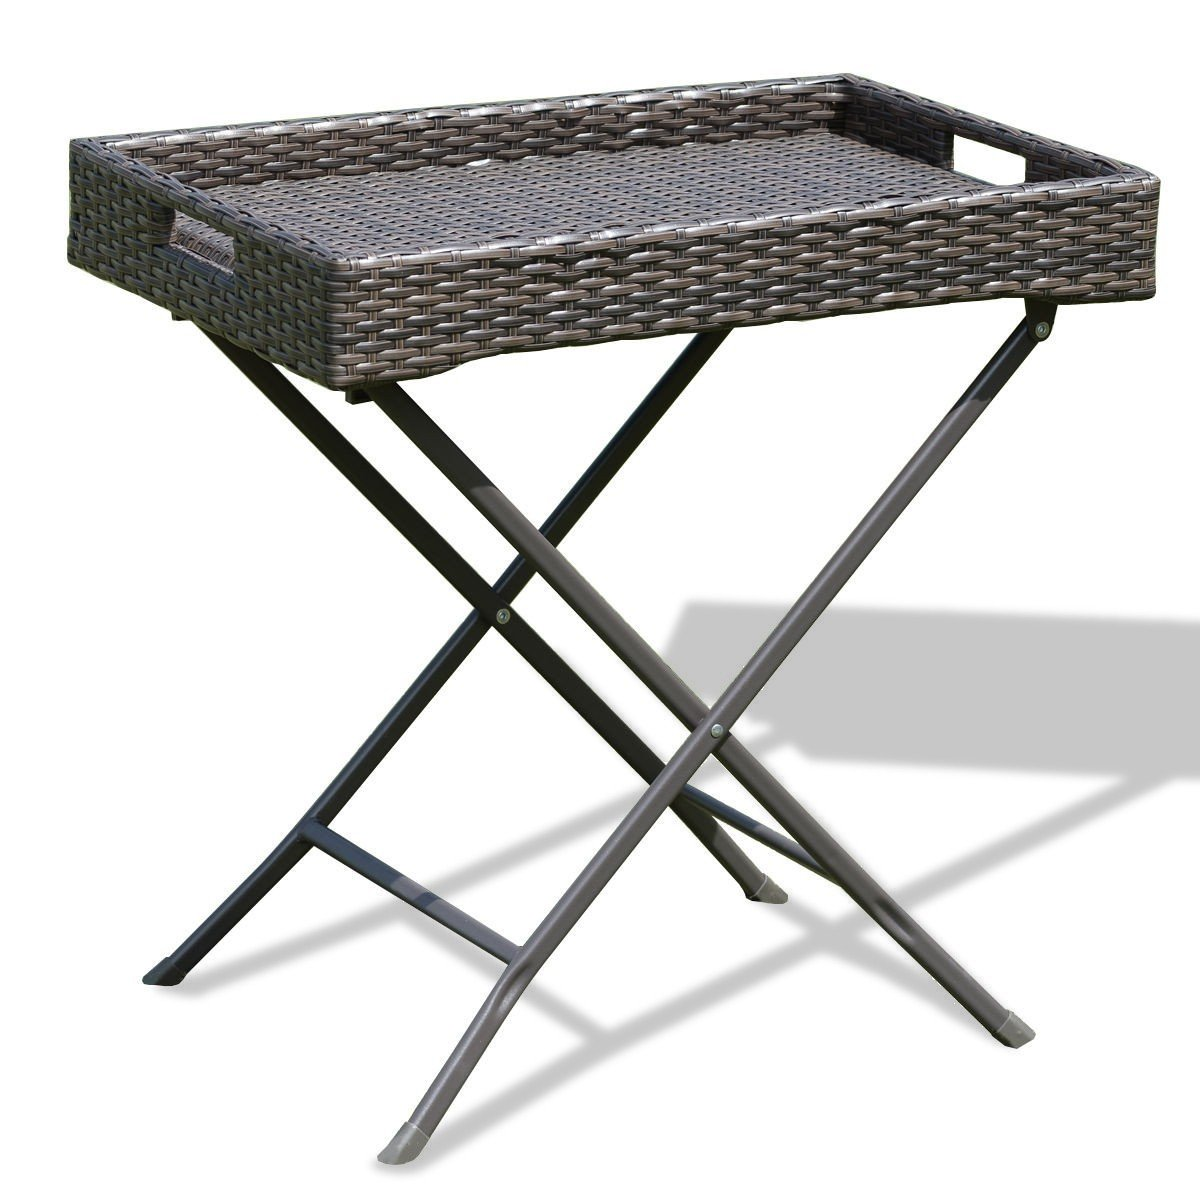 custpromo outdoor patio wicker side table foldable accent brown rattan tray garden ethan allen lamps marble and chrome coffee unique entryway tables butler specialty wall file